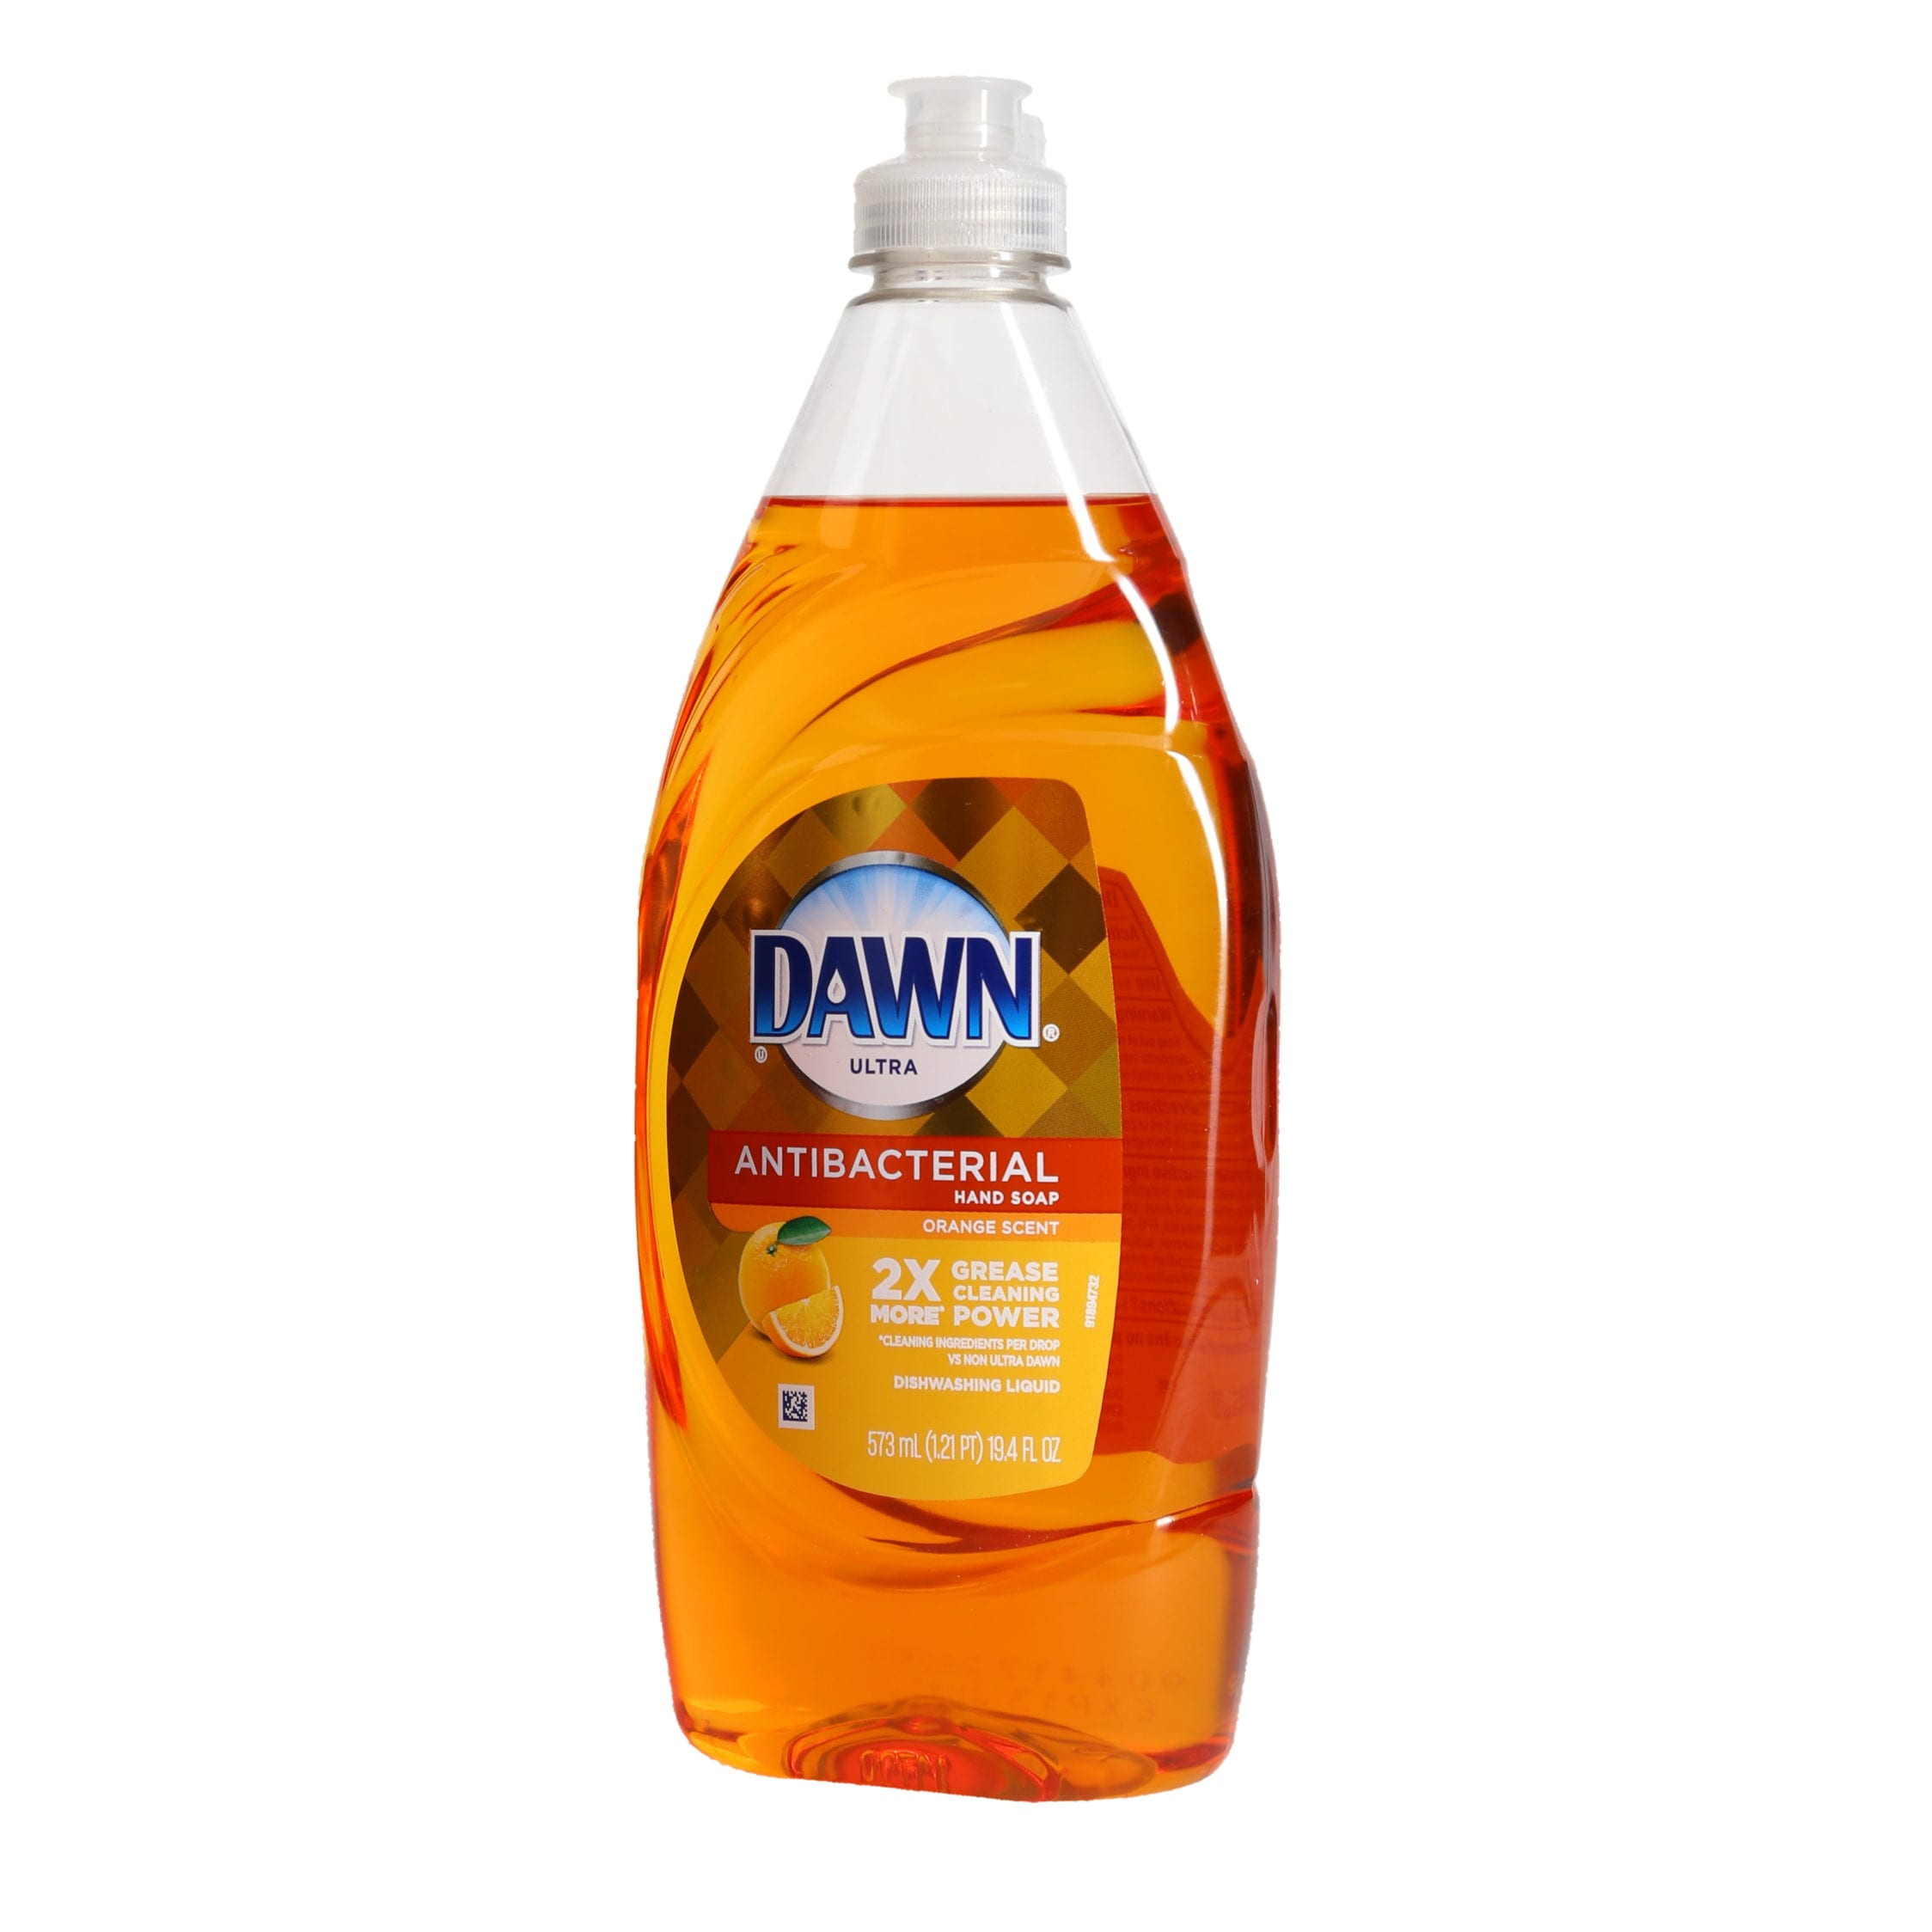 Ortery photography example grocery product dawn soap shot on pure white background